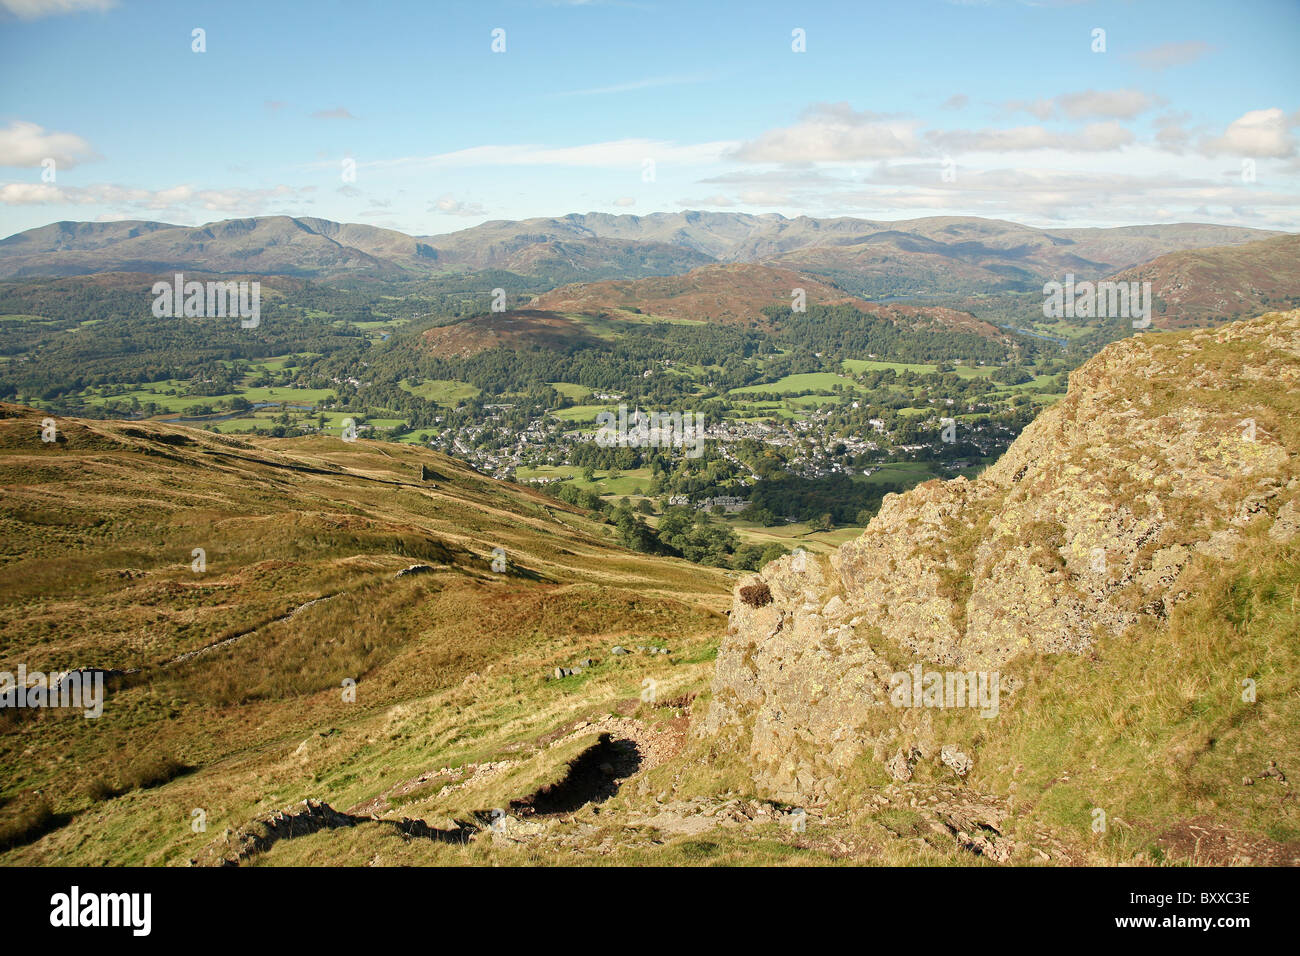 A view from Wansfell Pike overlooking the town of Ambleside in the English Lake District National Park Cumbria England - Stock Image